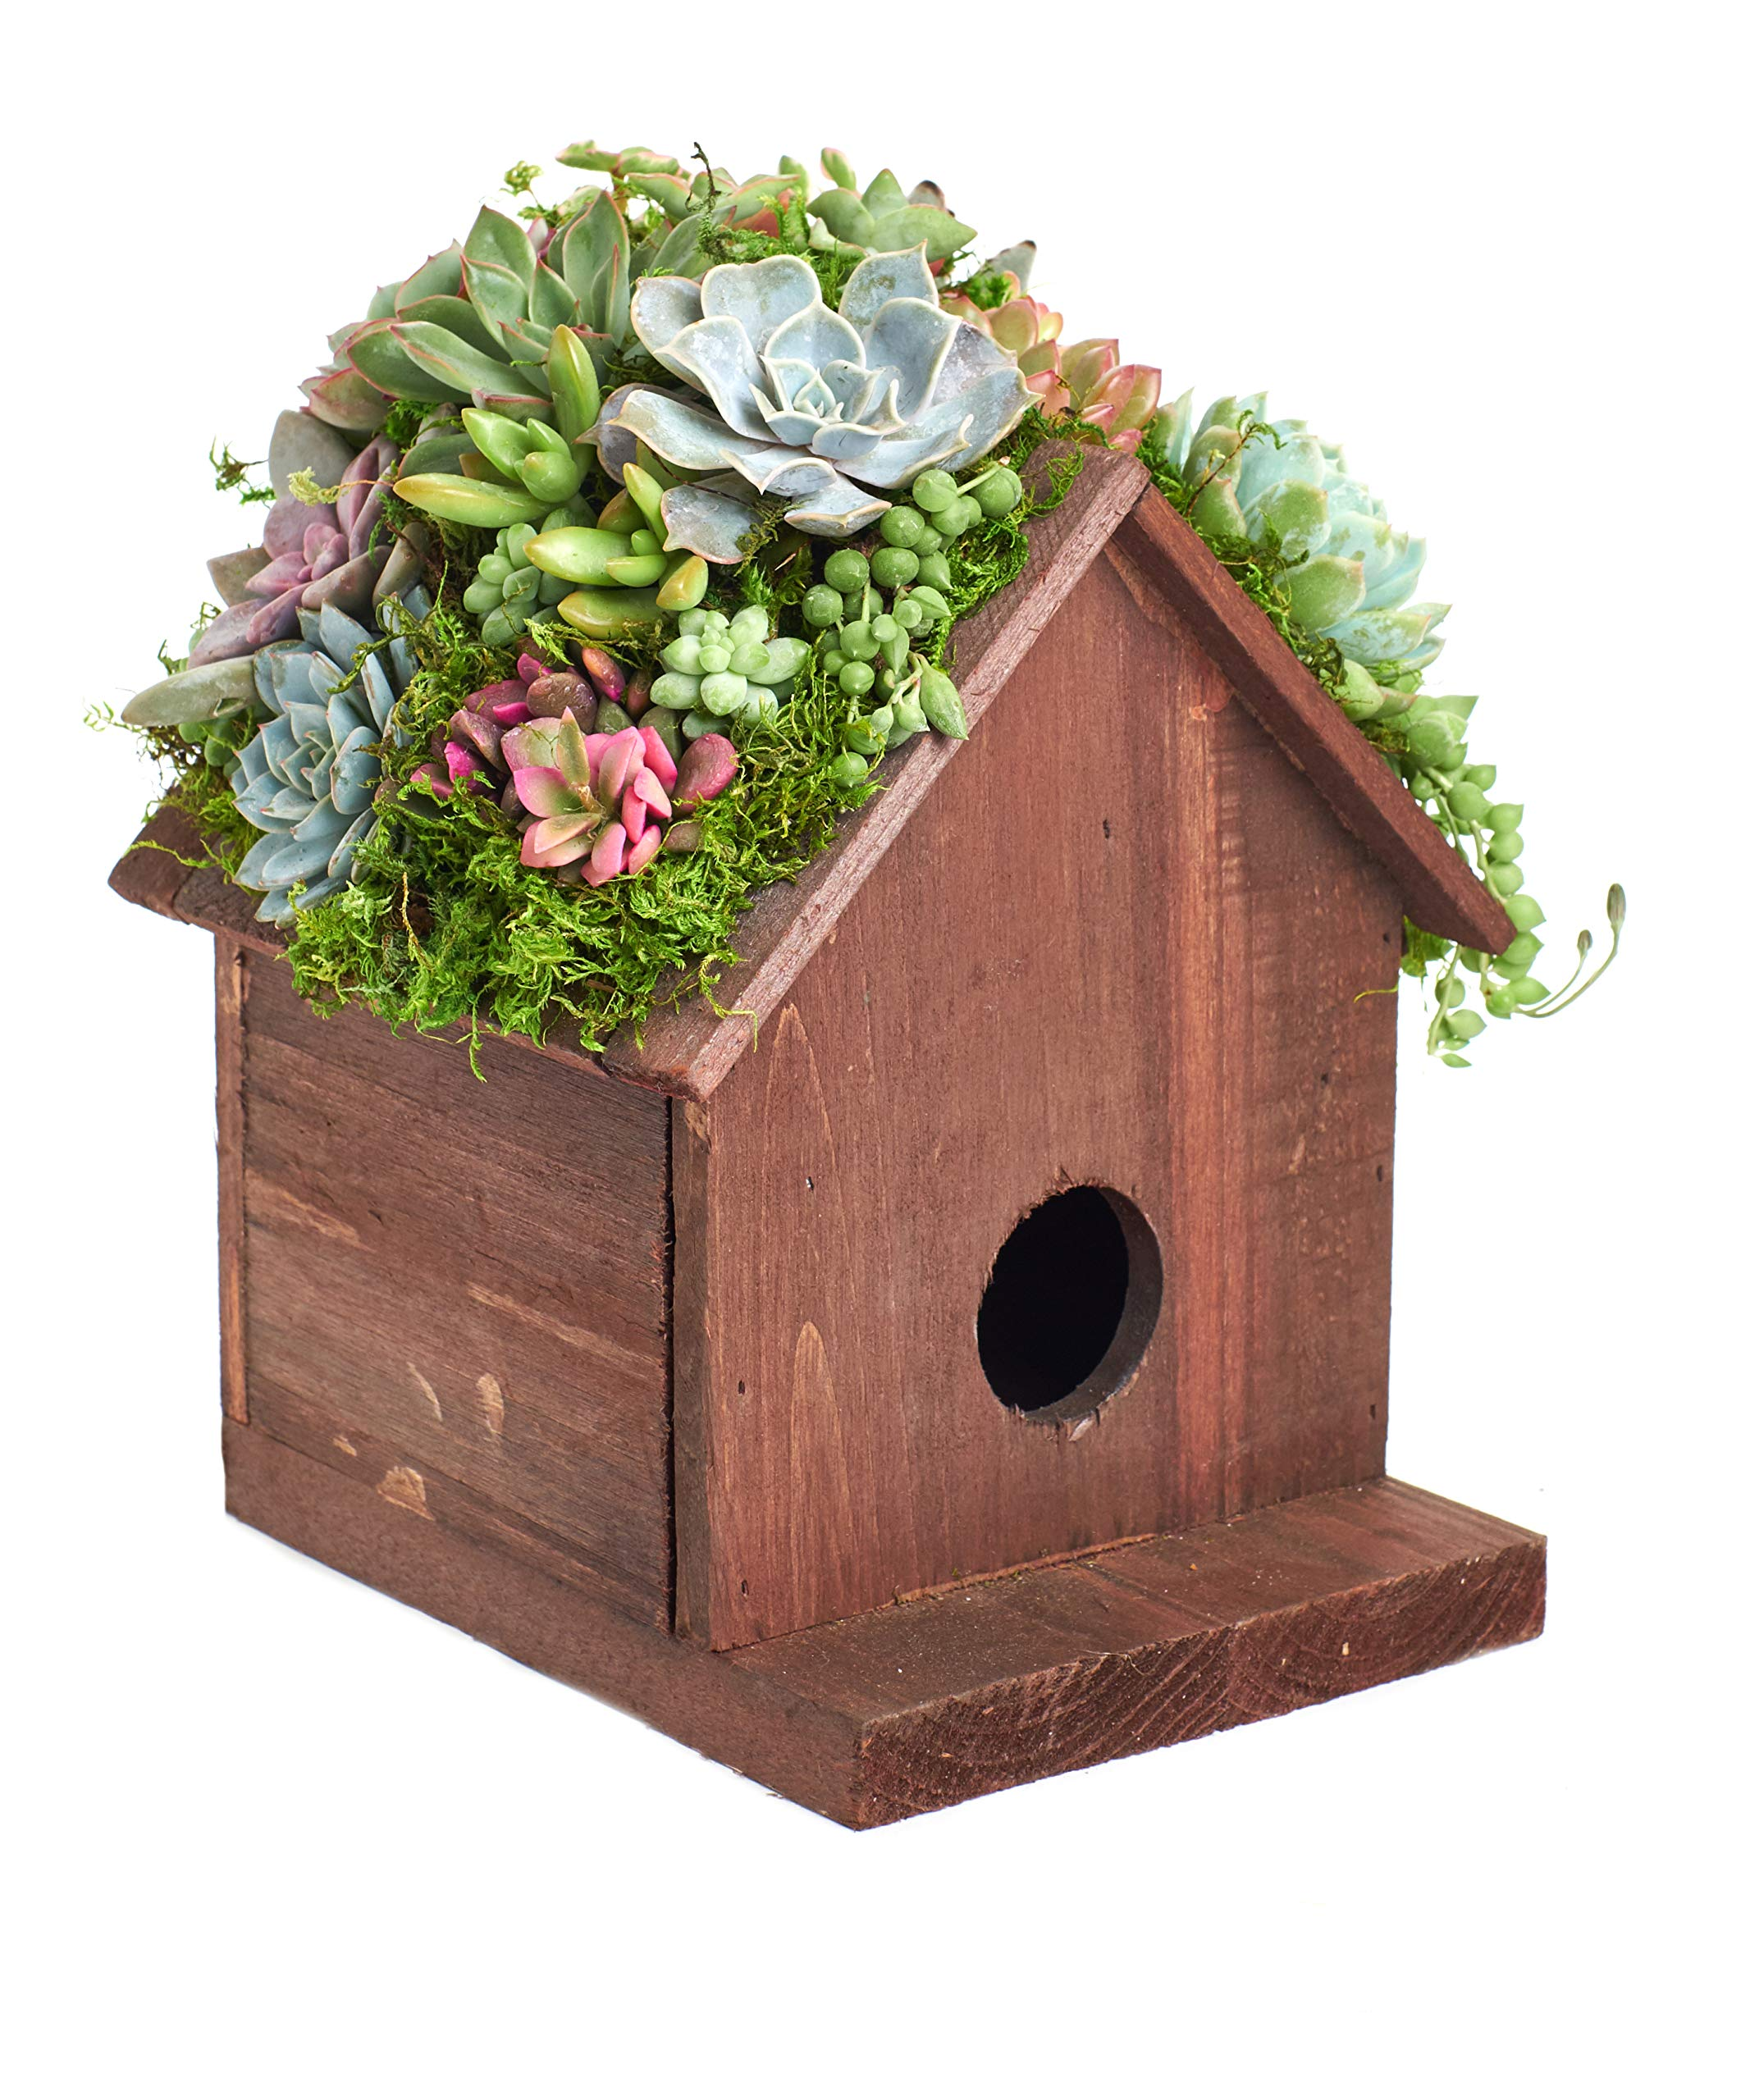 Shop Succulents BIRDHS-20-SUC-KIT Living Succulent Kit Birdhouse Planter